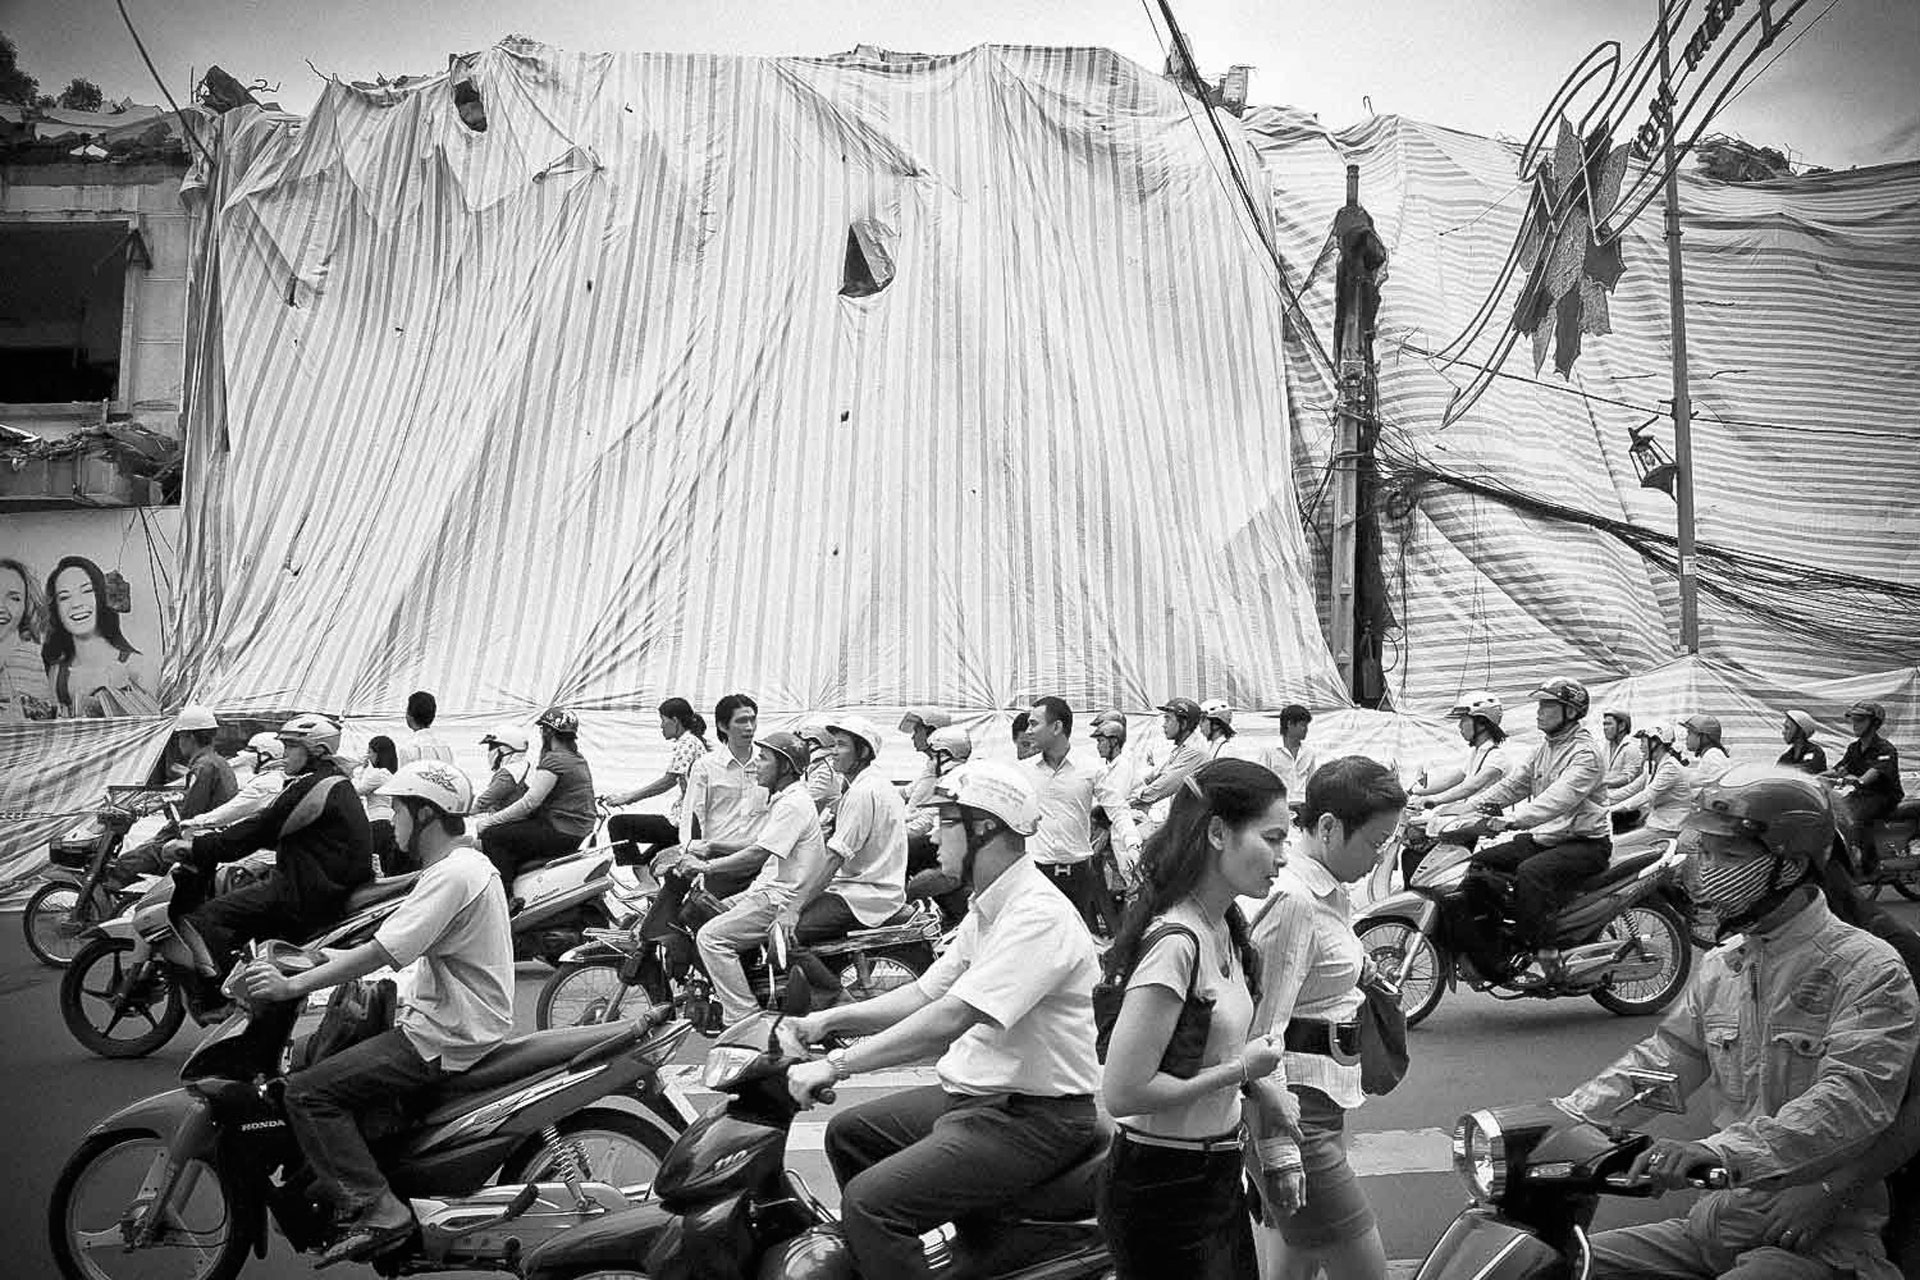 ©Ken Shung 'Crossroads, China'. Black and white - busy street full of motorcyclists, China